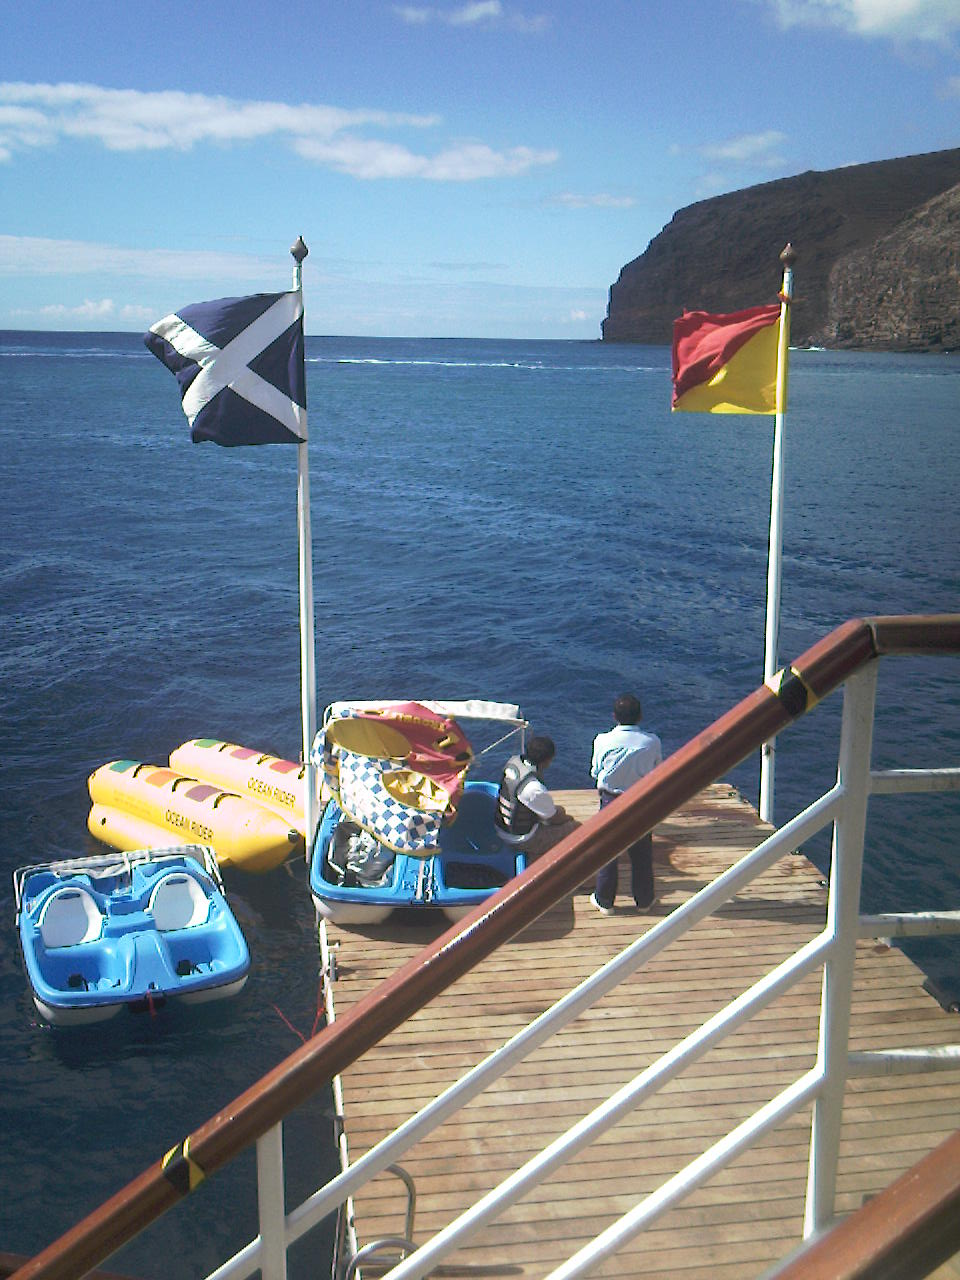 The pedalos and inflatable banana boat alongside the floating water sports deck in San Sebastian de la Gomera